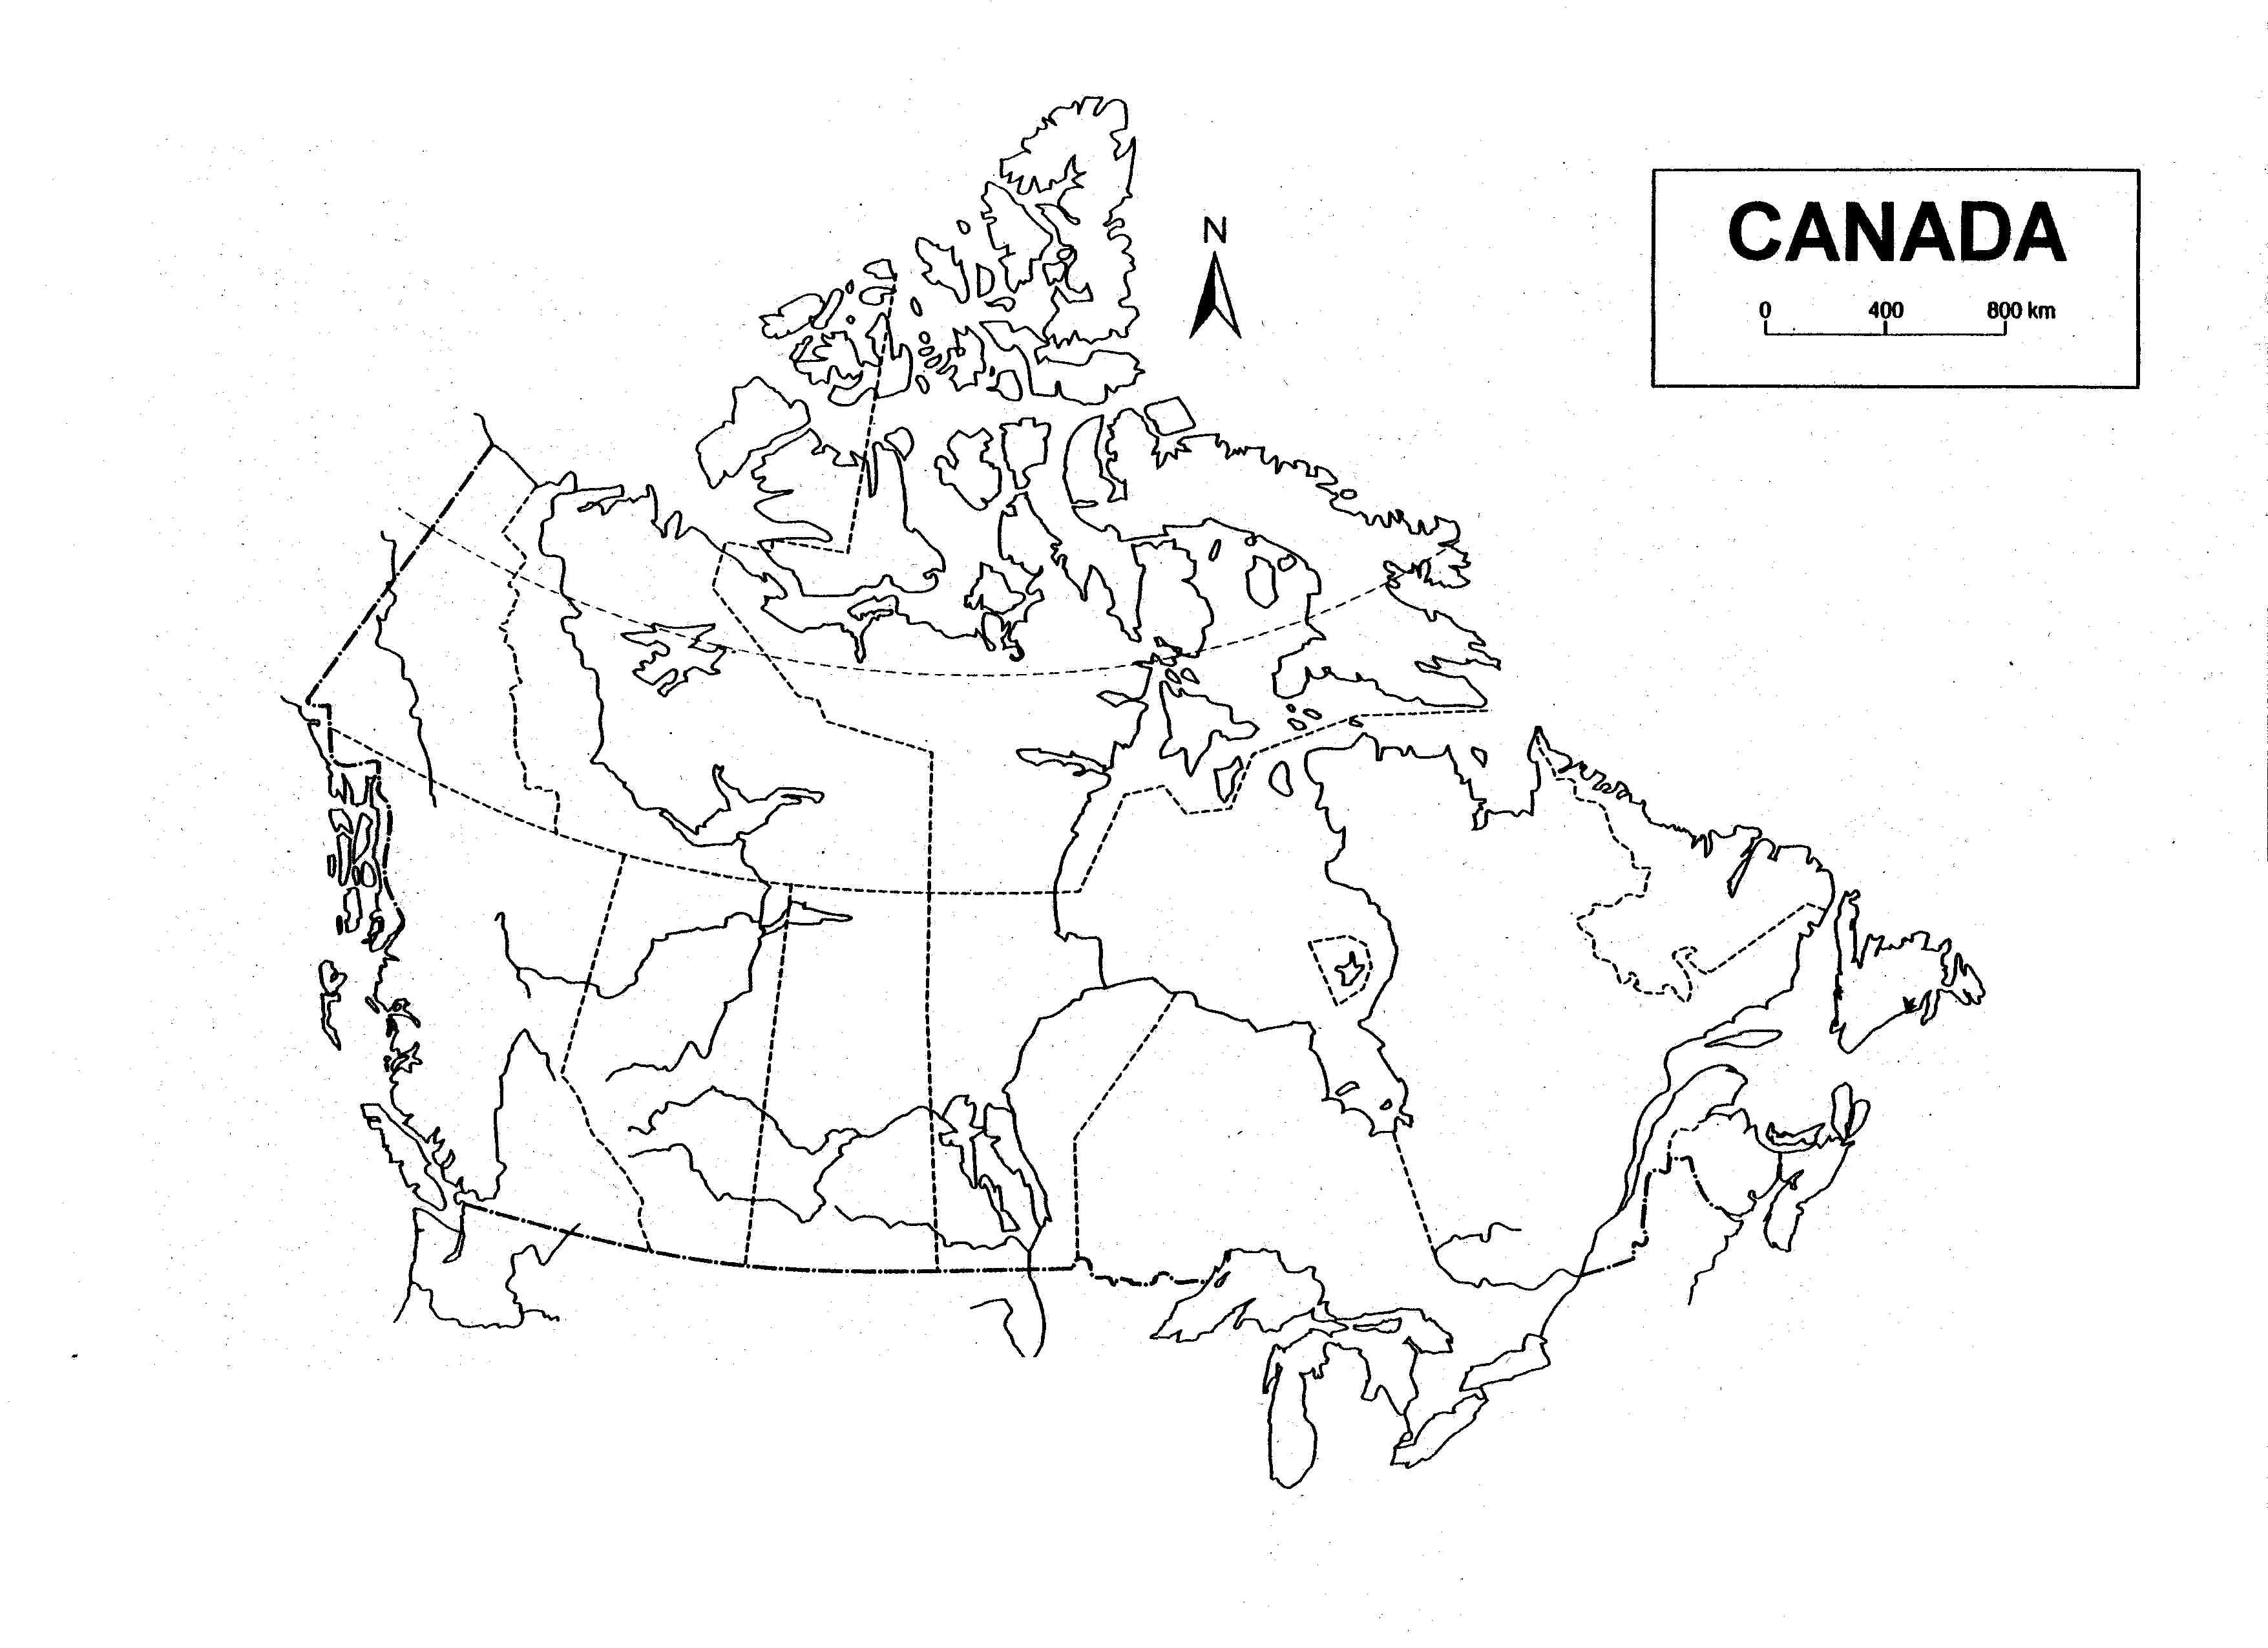 Blank Map Of Canada With Lakes And Rivers.Blank Map Of Canada With Lakes And Rivers